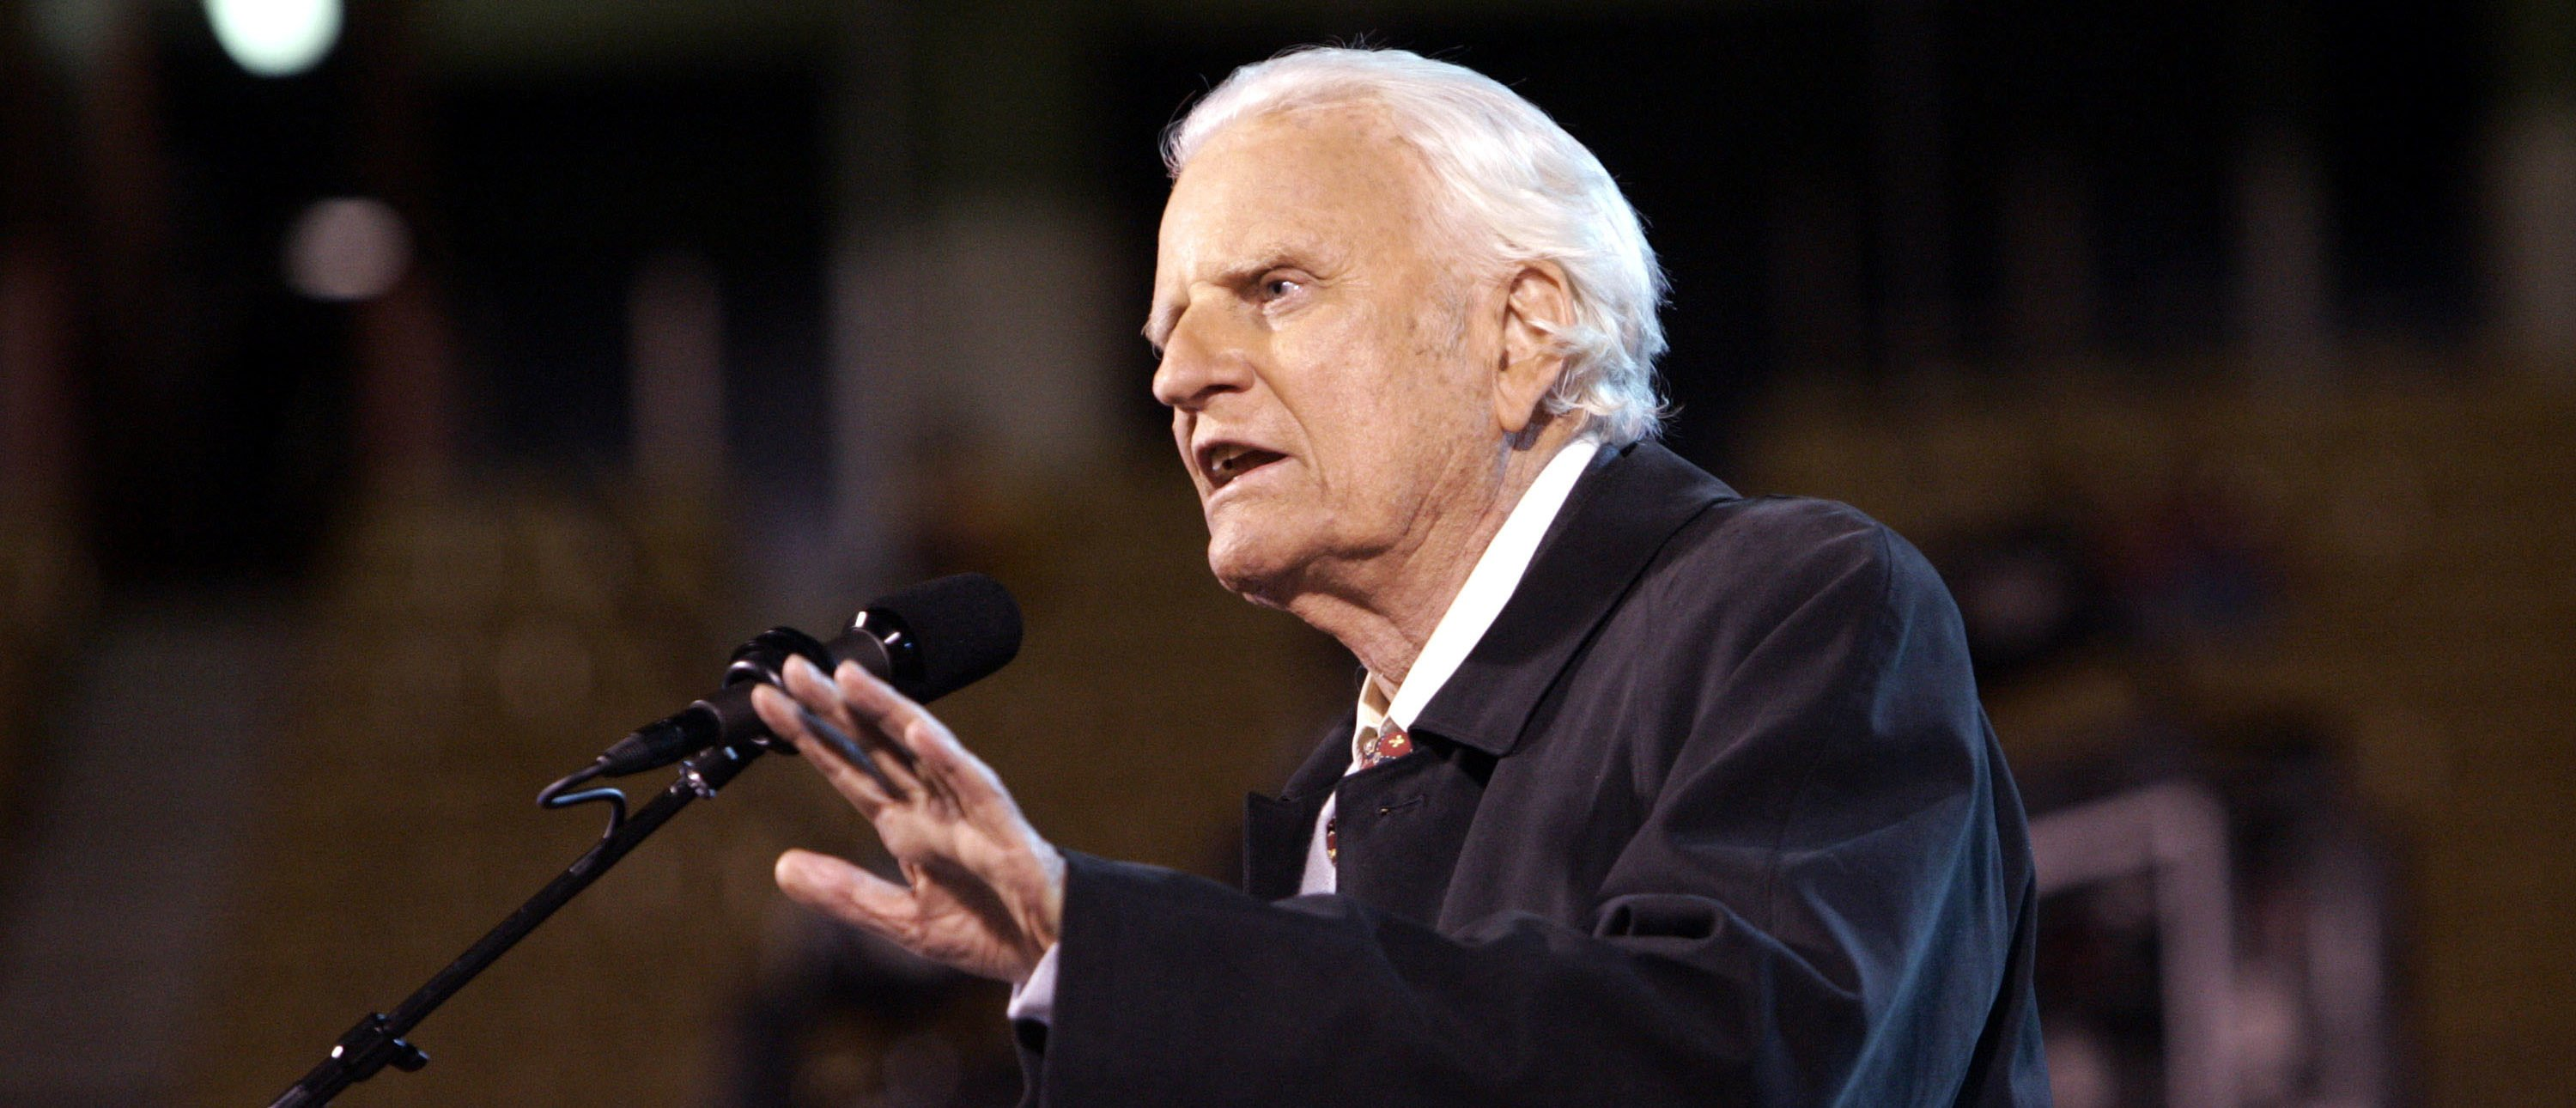 The Rev. Billy F. Graham speaks to the crowd on a rainy night October 7, 2004 at Arrowhead Stadium in Kansas City, Missouri. (Photo by Larry W. Smith/Getty Images)